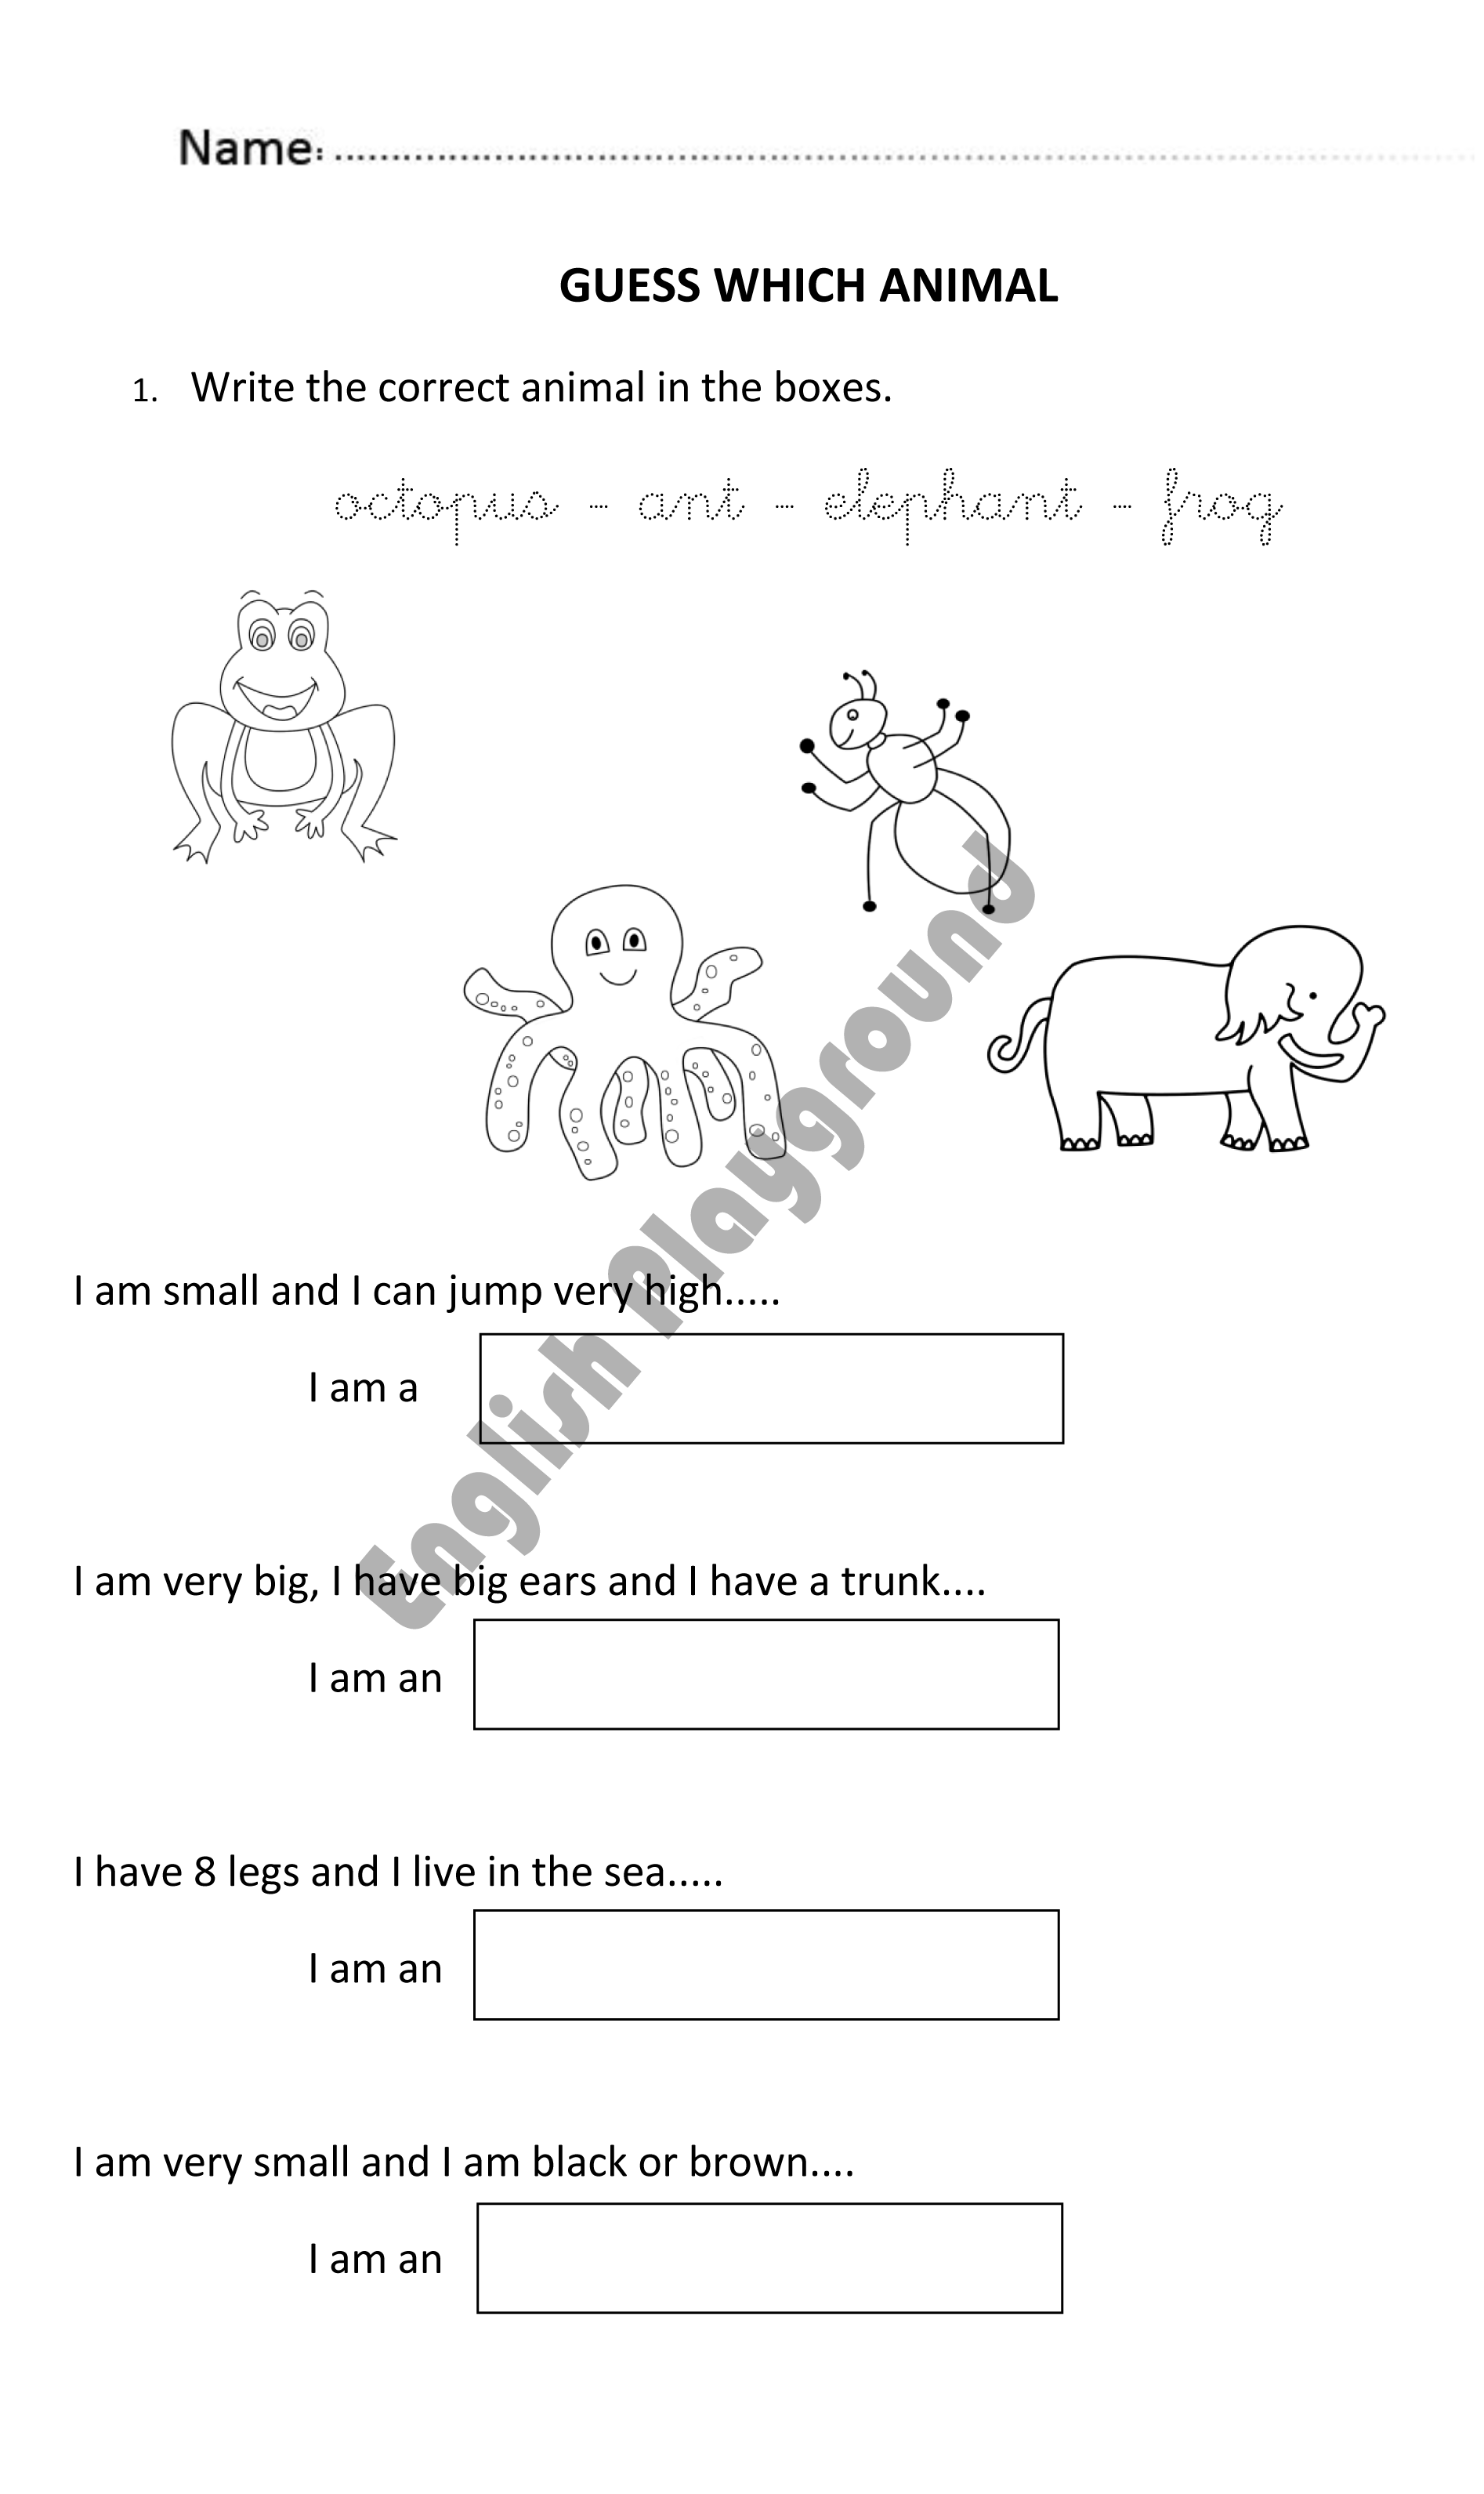 hight resolution of Fun worksheet to guess animals for 5 and 6 years olds. #AnimalWorksheet    Activities for 6 year olds